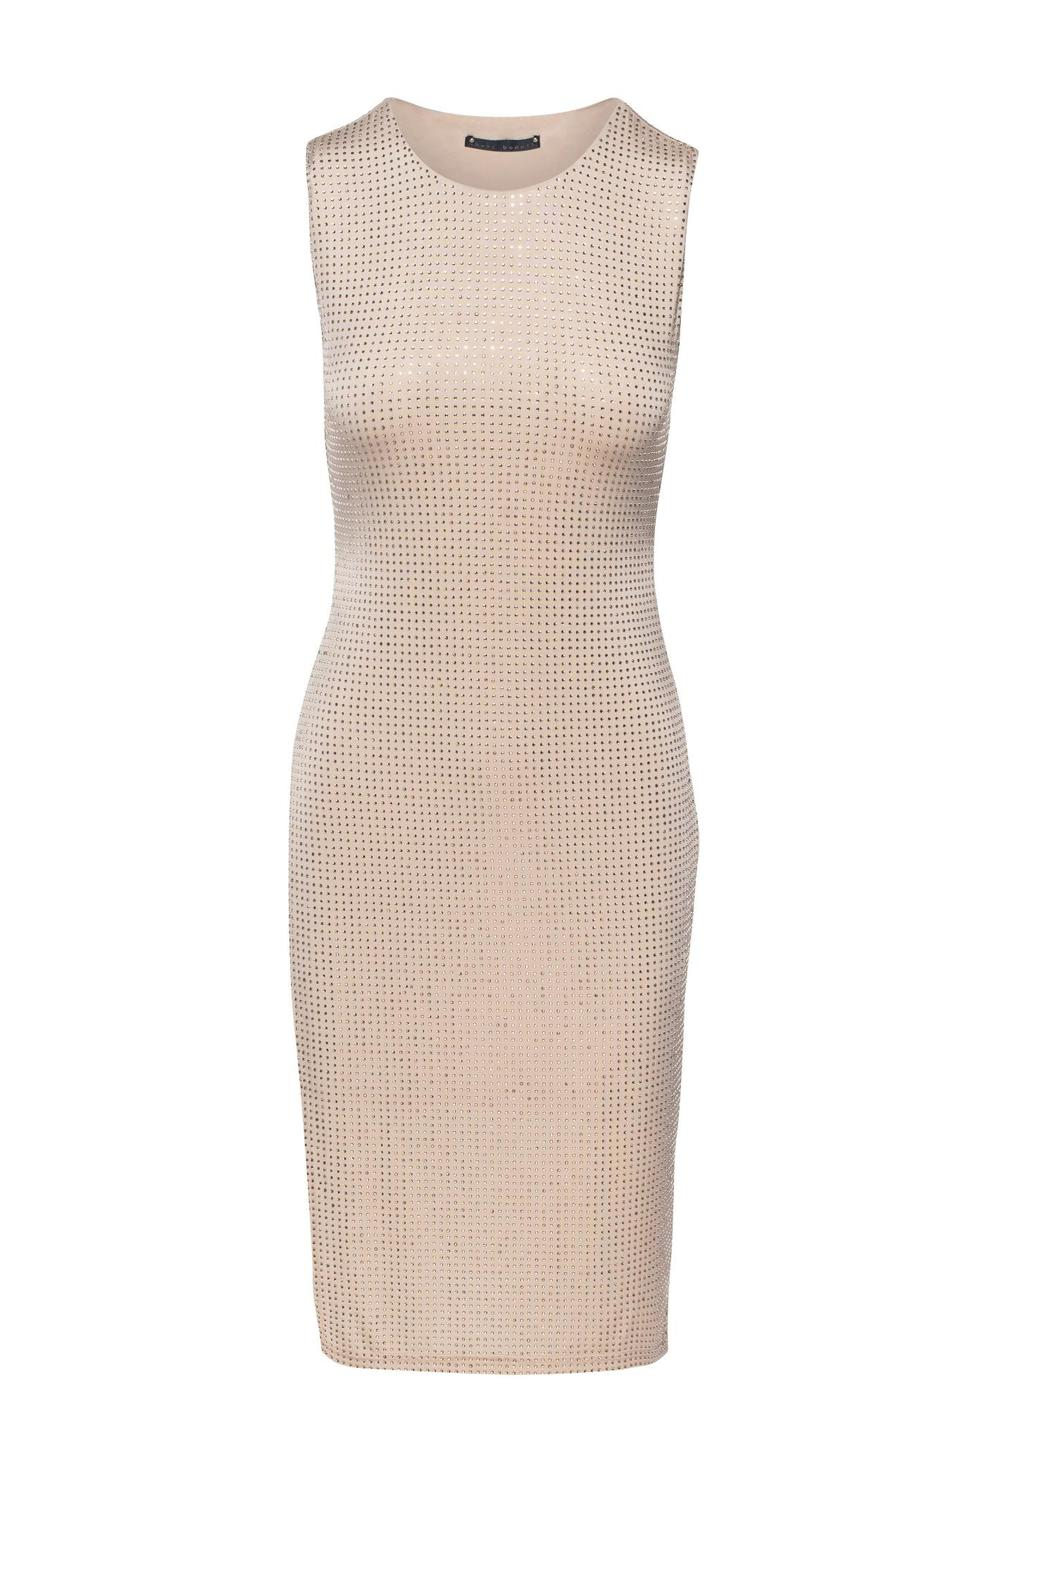 Sheri Bodell Crystal Overlay Dress - Front Cropped Image